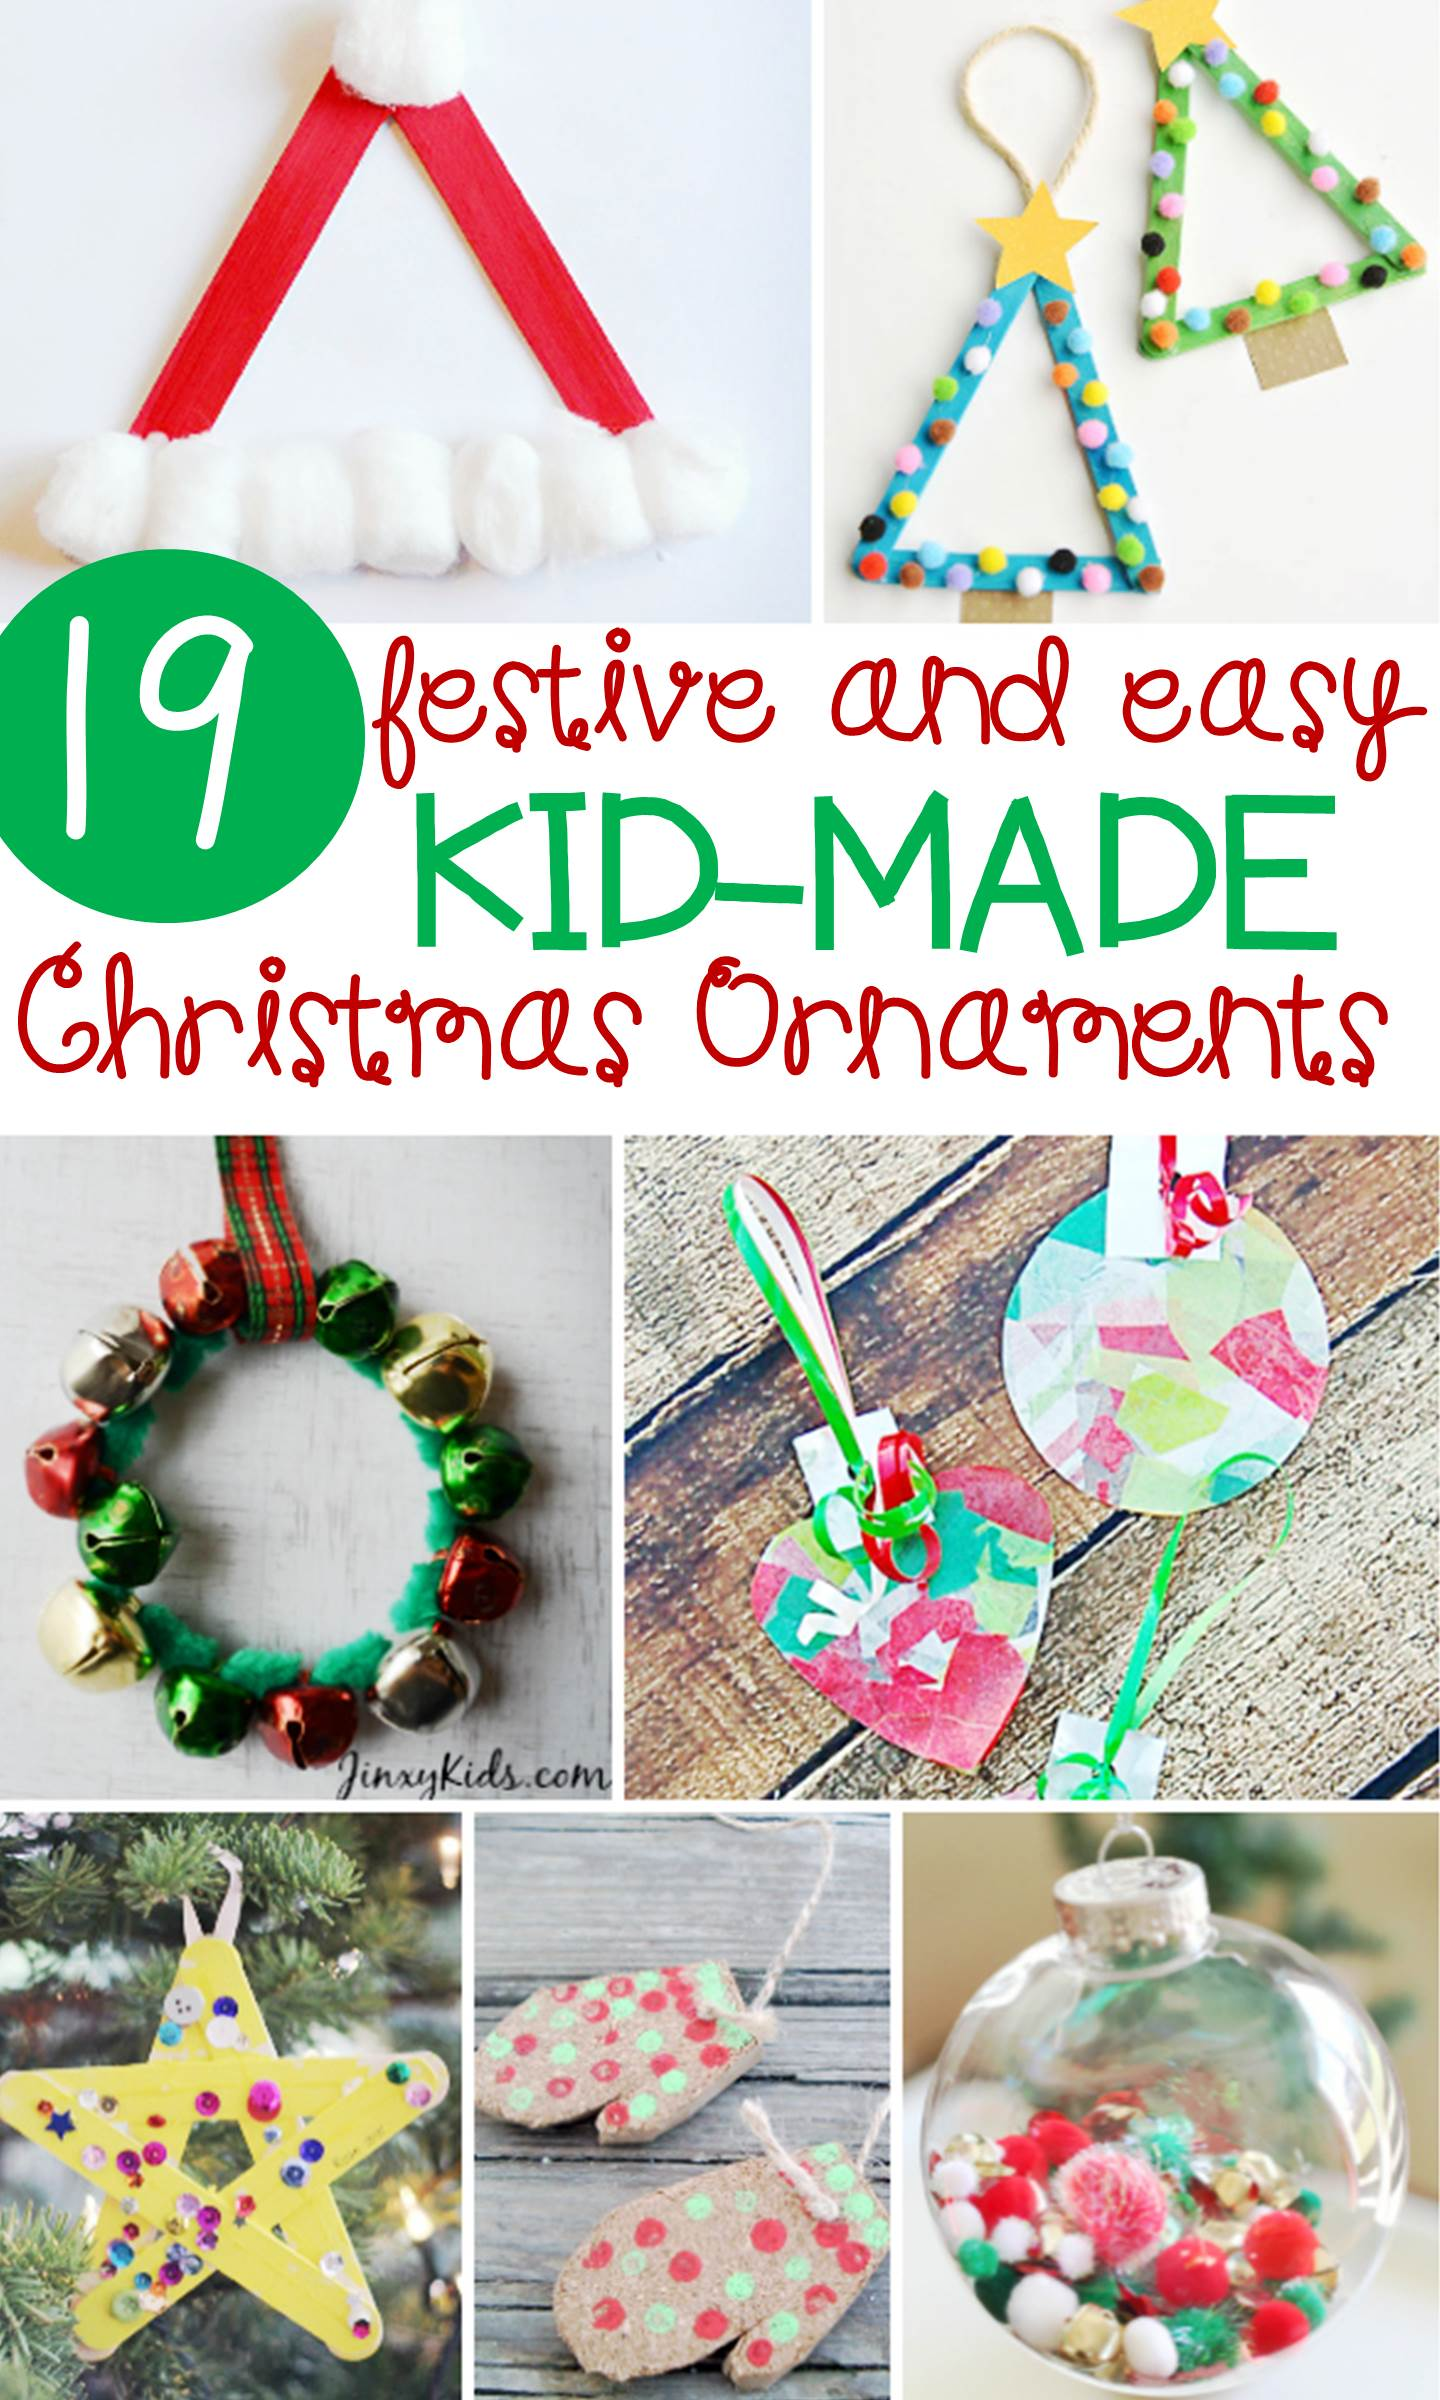 Festive and Simple Kids' Christmas Ornaments - The ...